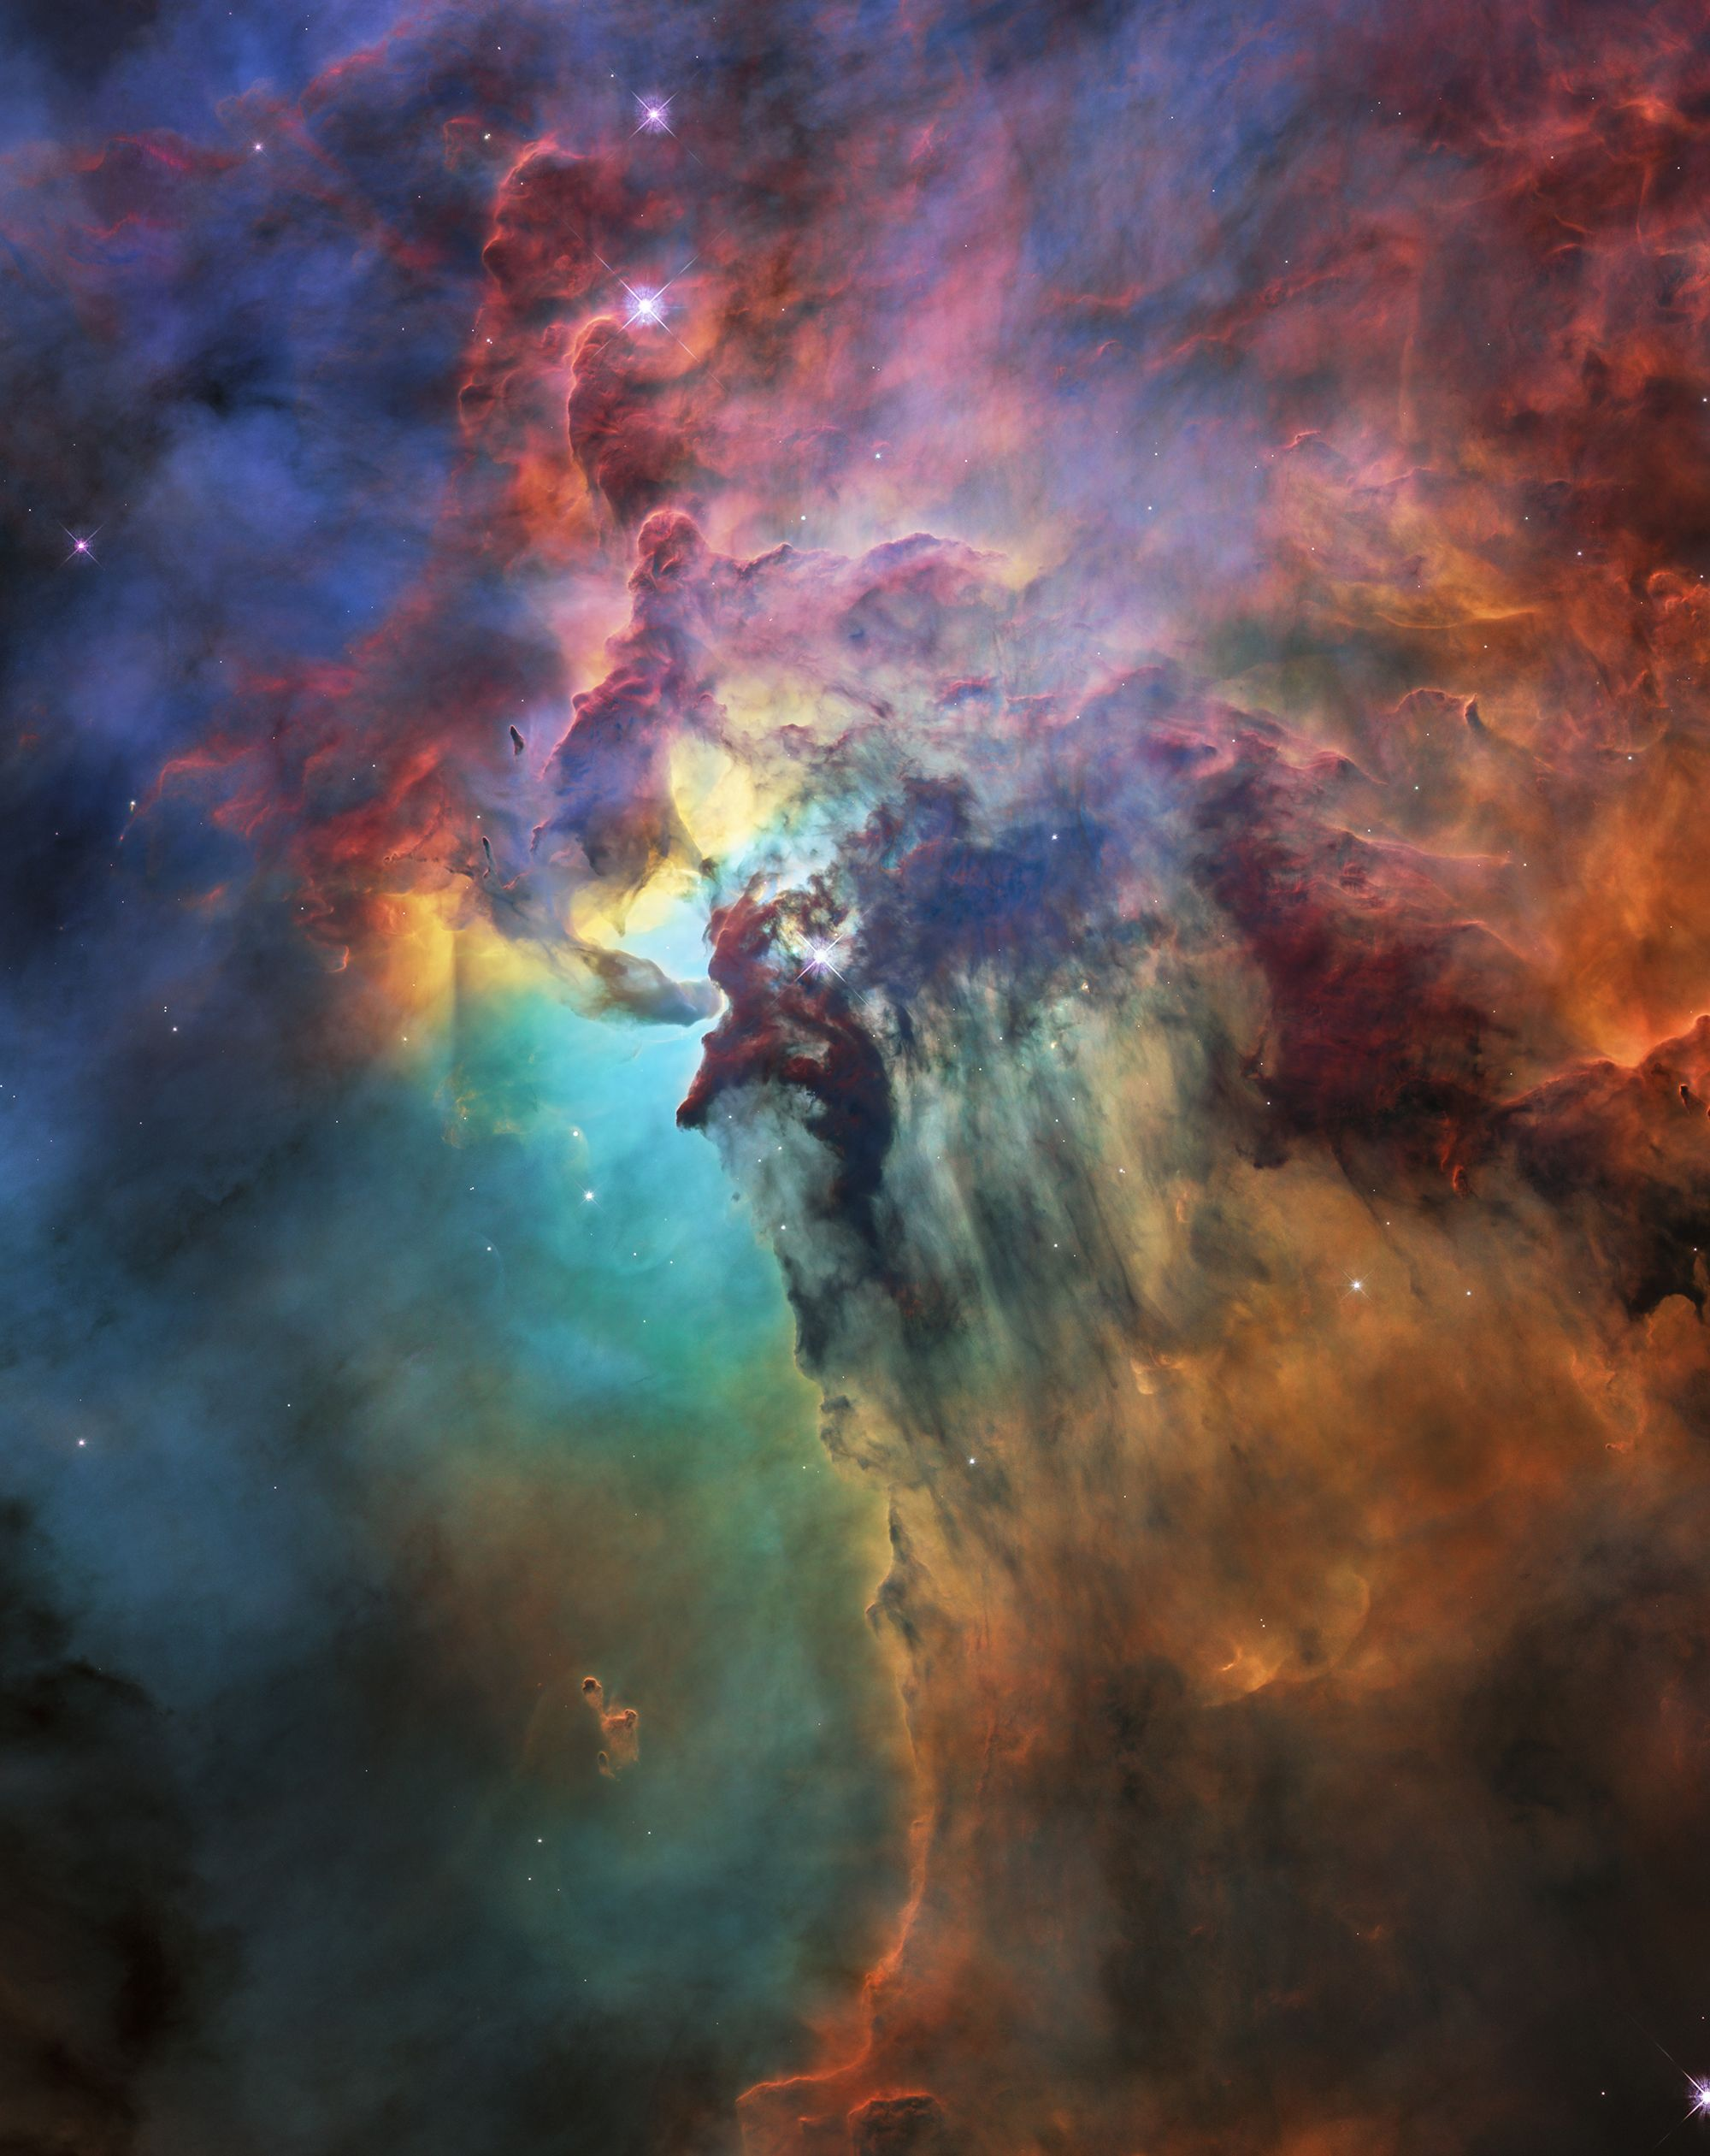 Hubble Just Blew Our Minds Yet Again With These New Photos Of A Nebula